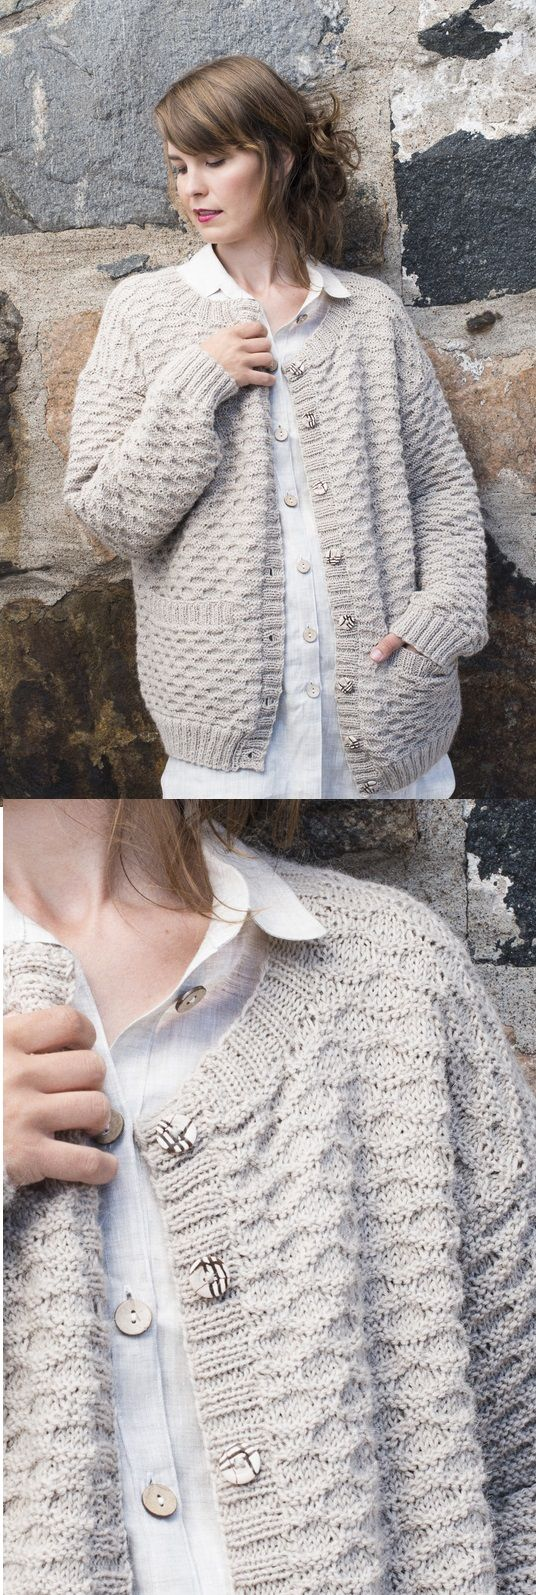 Free knitting pattern for a textured knitted jacket for women | Knitting Patterns